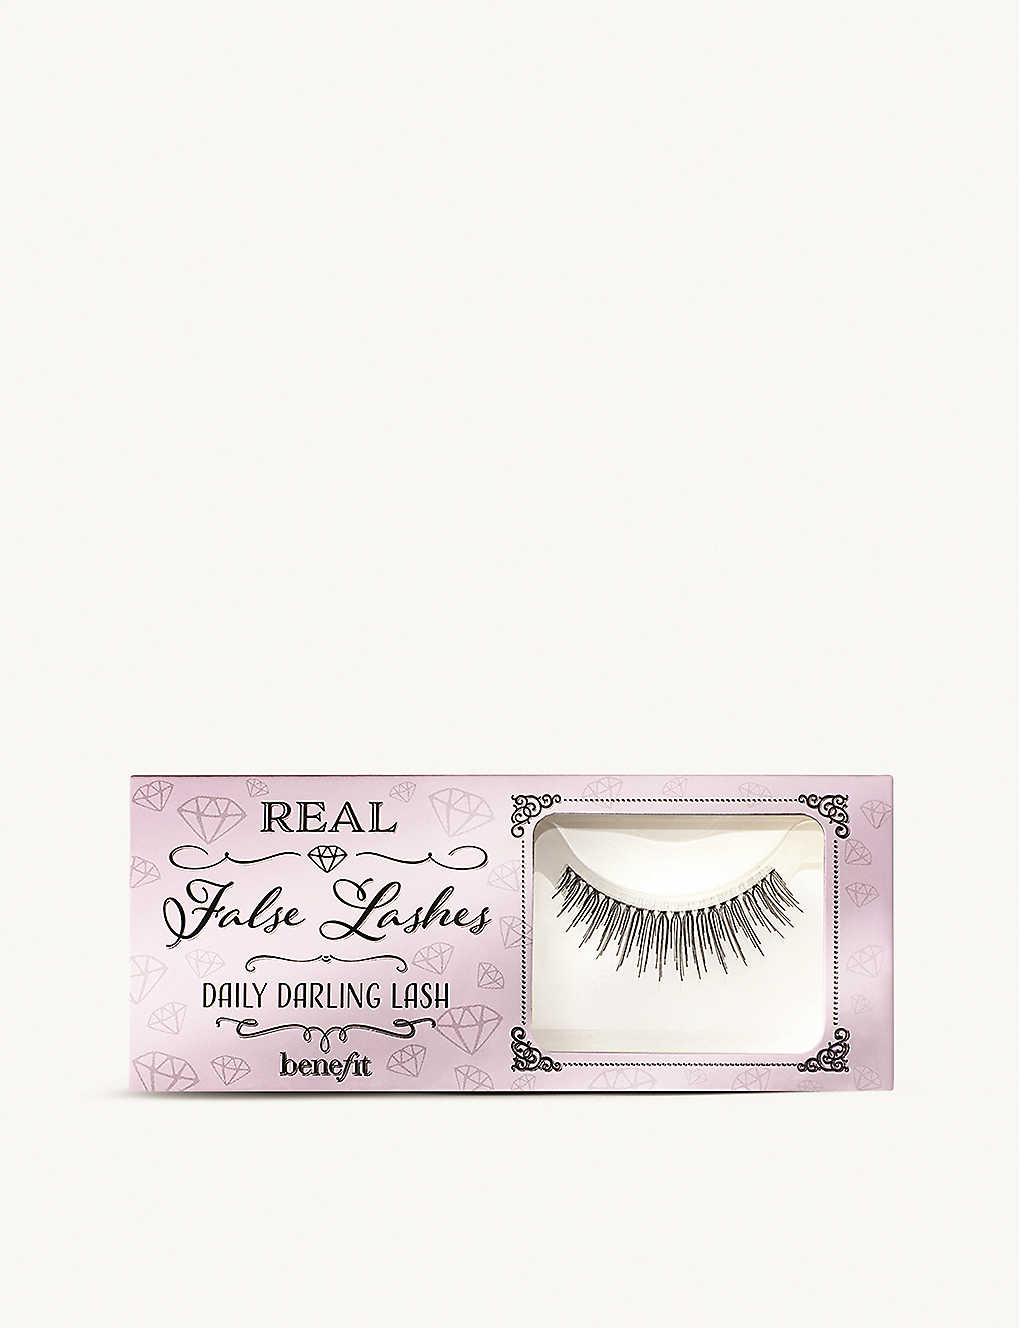 BENEFIT: Daily Darling Lash